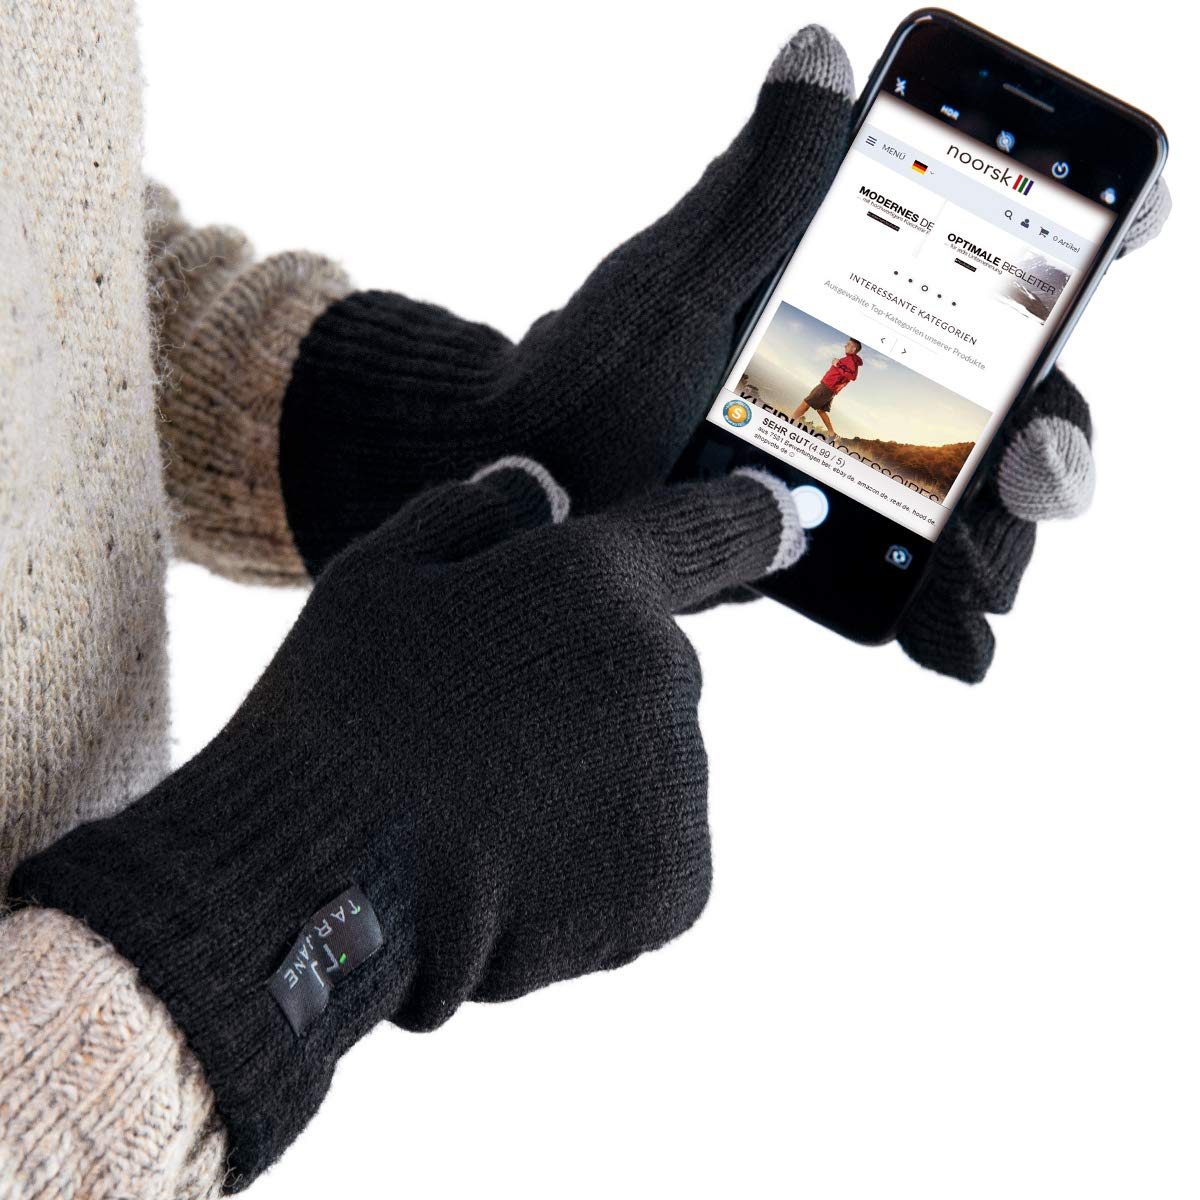 fae4f0db6f3e2e Thermo Handschuhe mit Touchscreen Funktion Screen Gloves extra warm TOG  1.9: Amazon.de: Sport & Freizeit